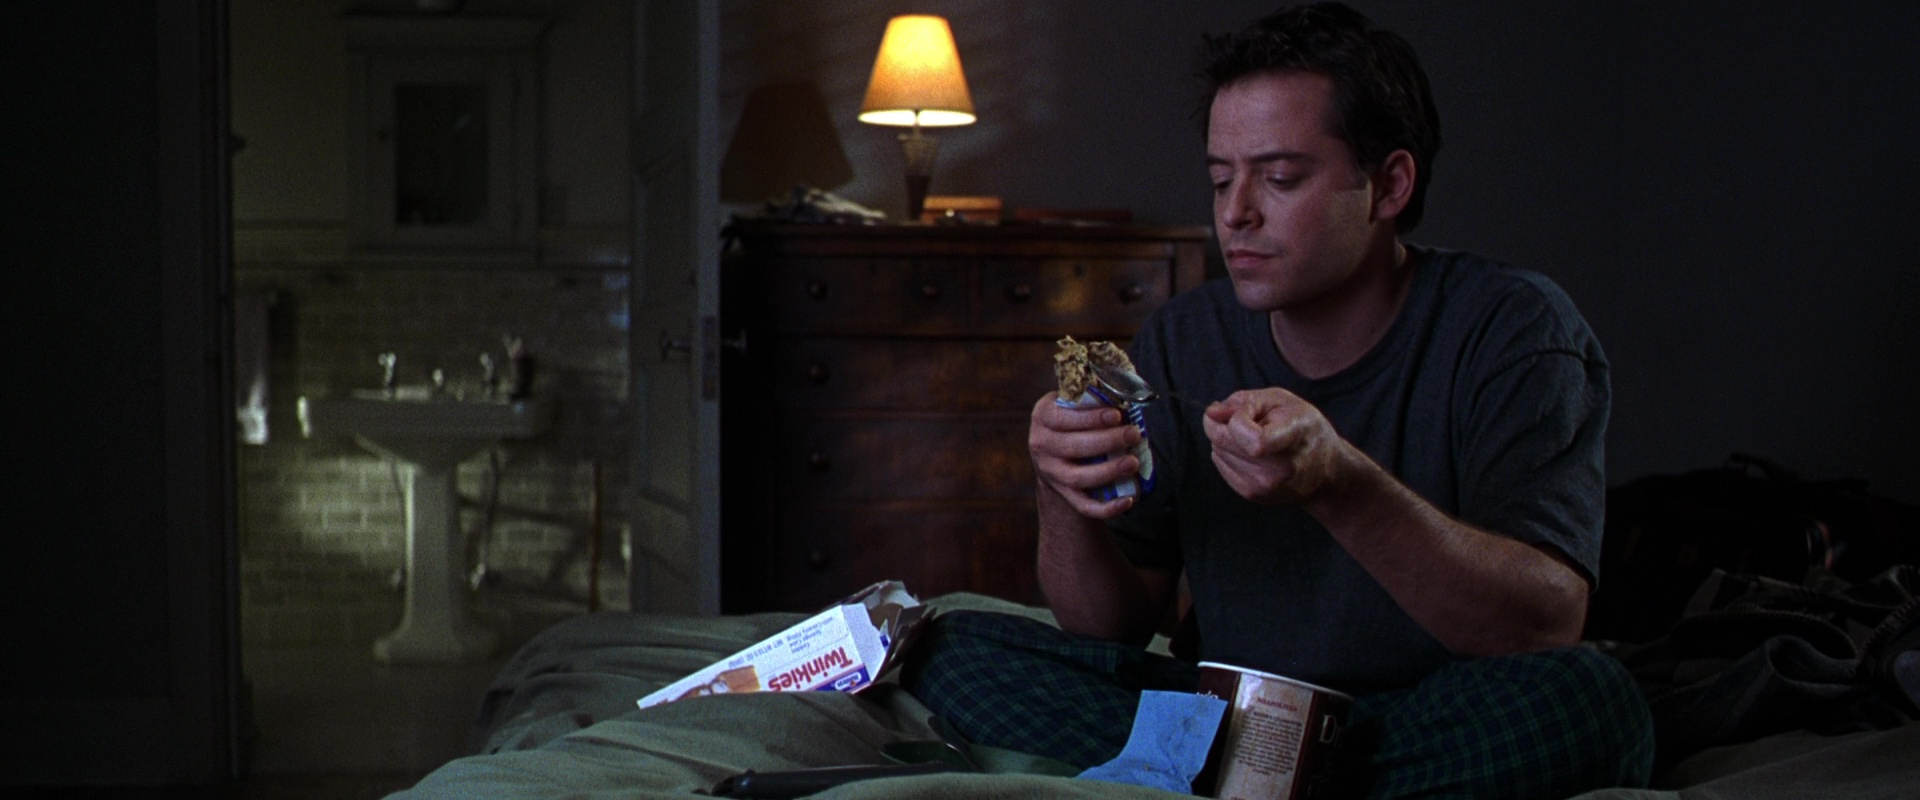 Hostess-Twinkies-and-Matthew-Broderick-in-The-Cable-Guy-1.jpg